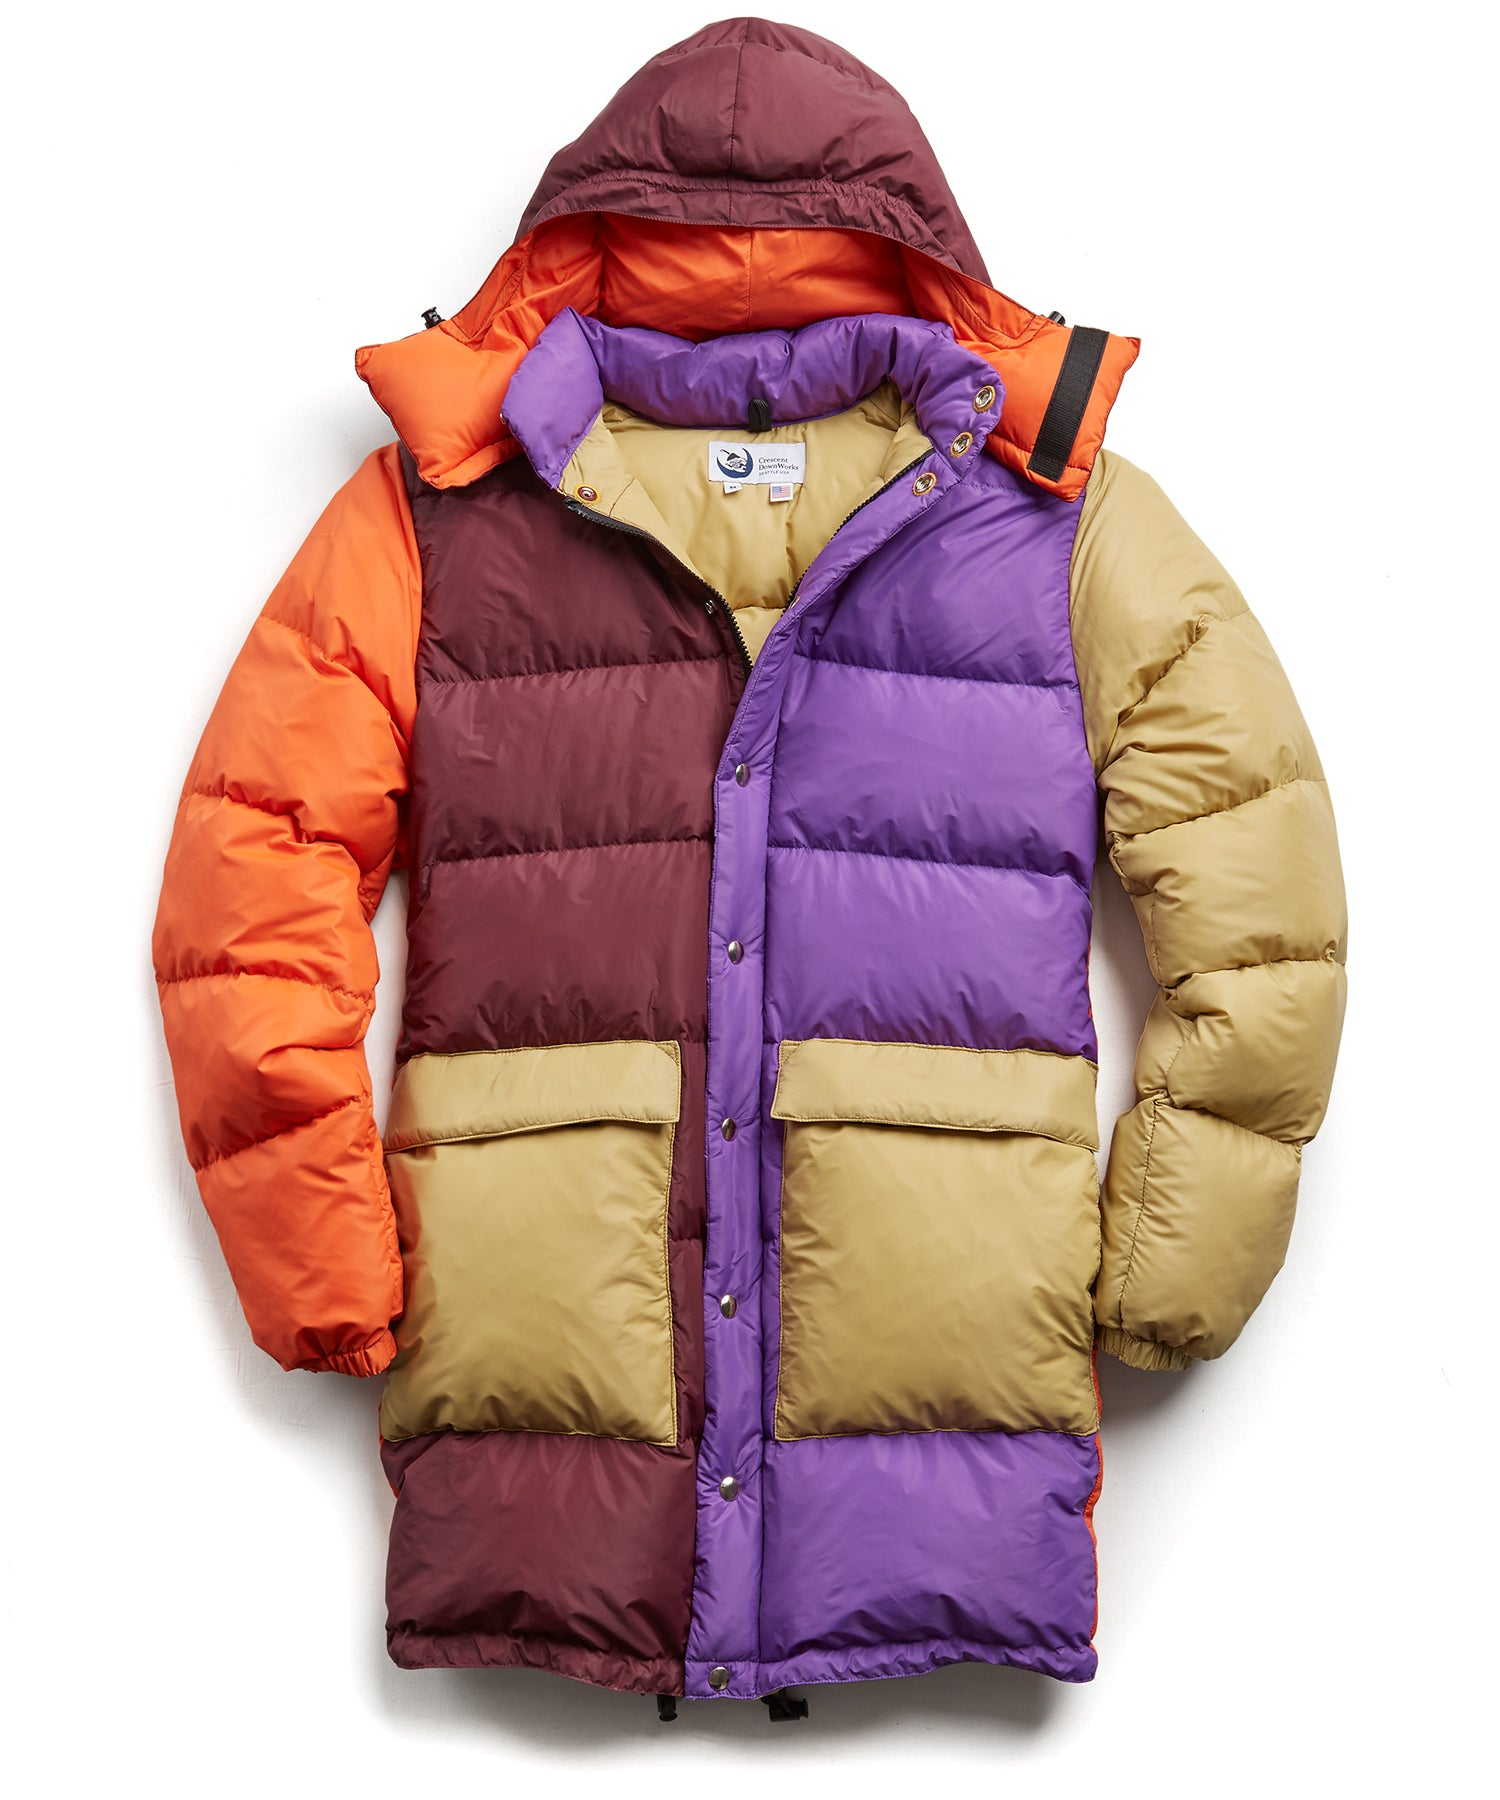 Exclusive Crescent Down + Todd Snyder Multi Color Parka